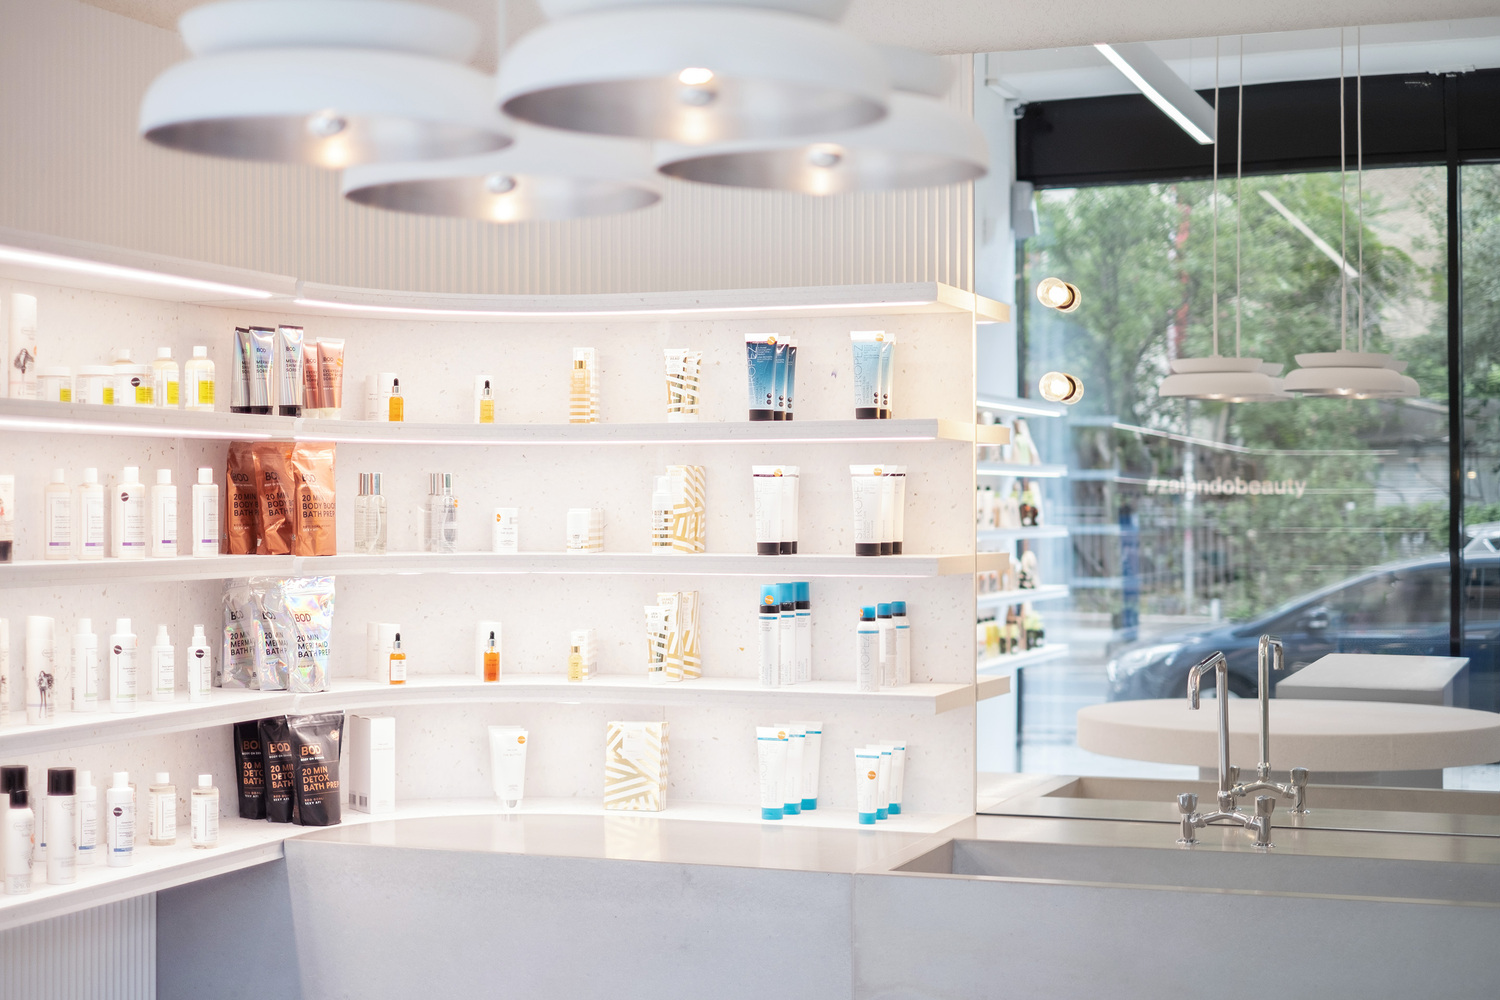 8_Zalando Beauty Station_Batek Architekten_Inspirationist